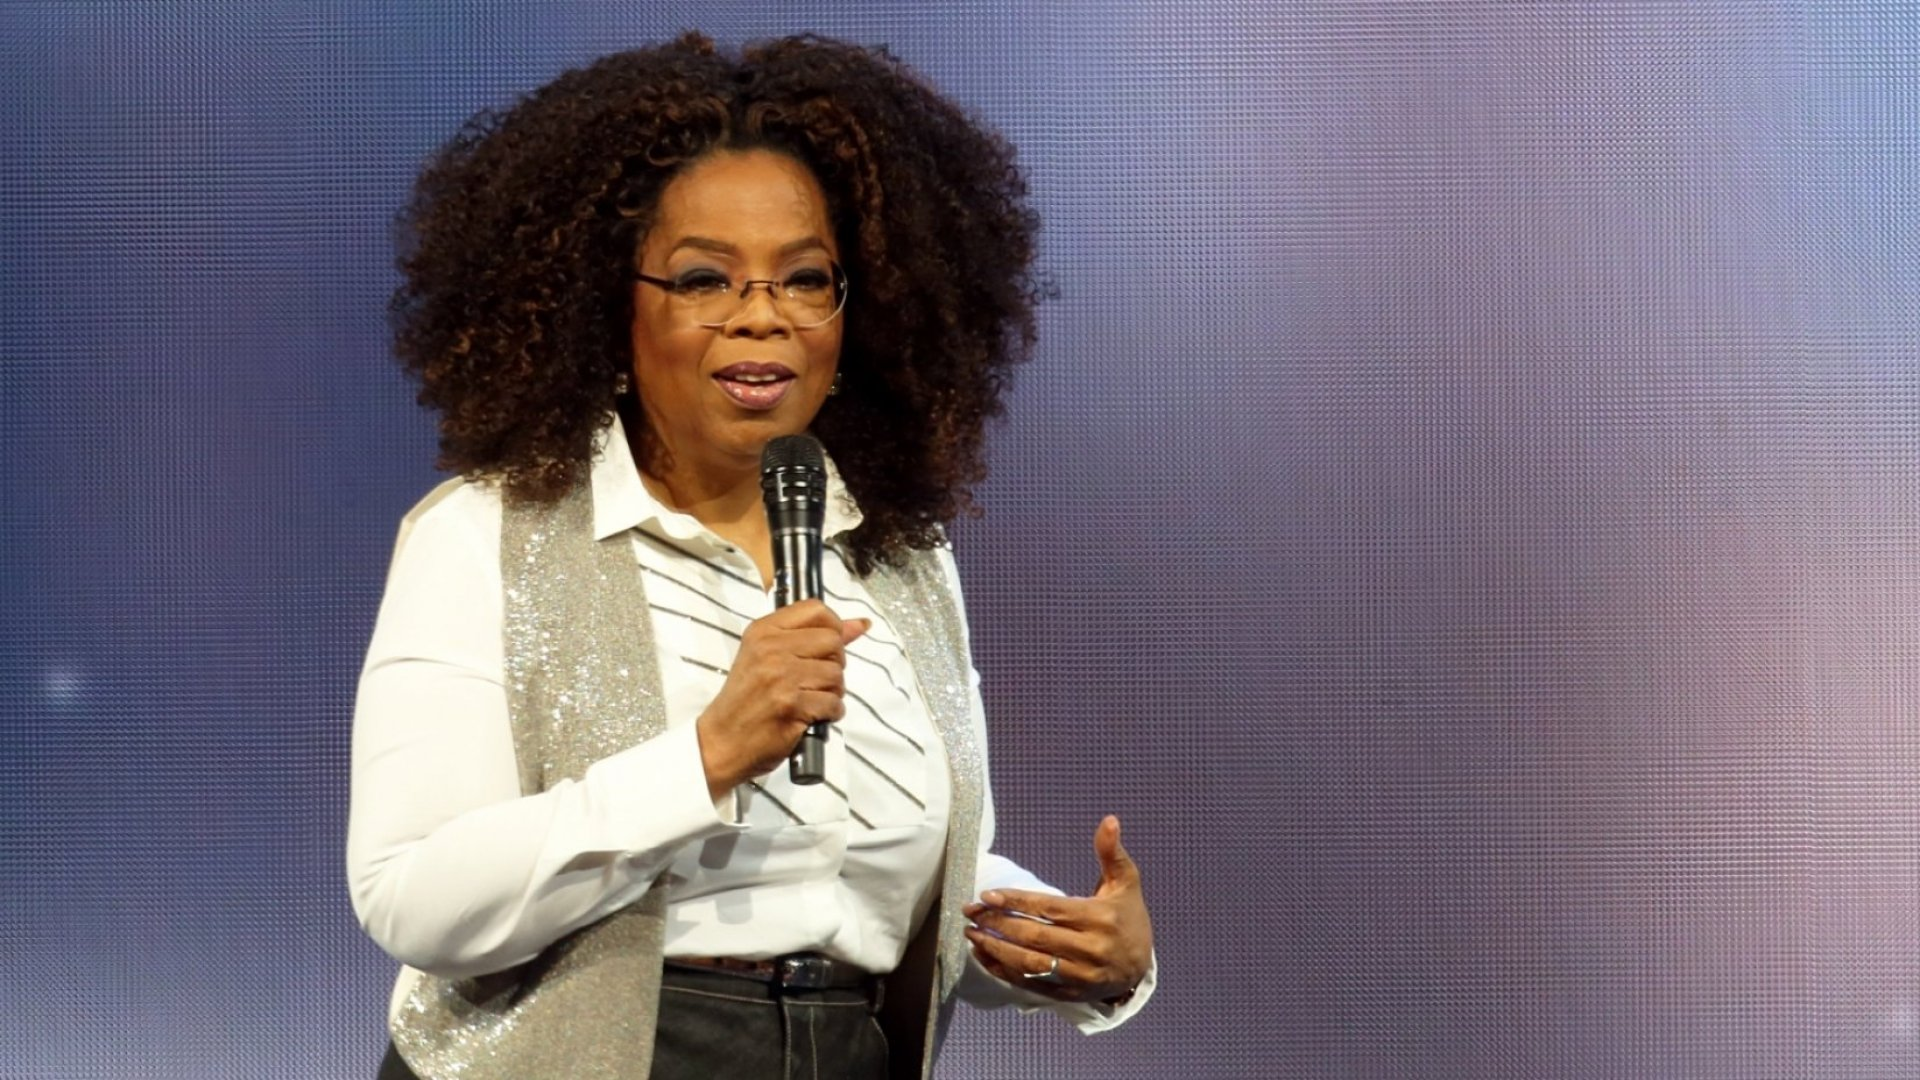 Why Aren't More Extremely Busy People Incredibly Successful? Scientists (and Oprah Winfrey) Say Another Factor Matters a Lot More